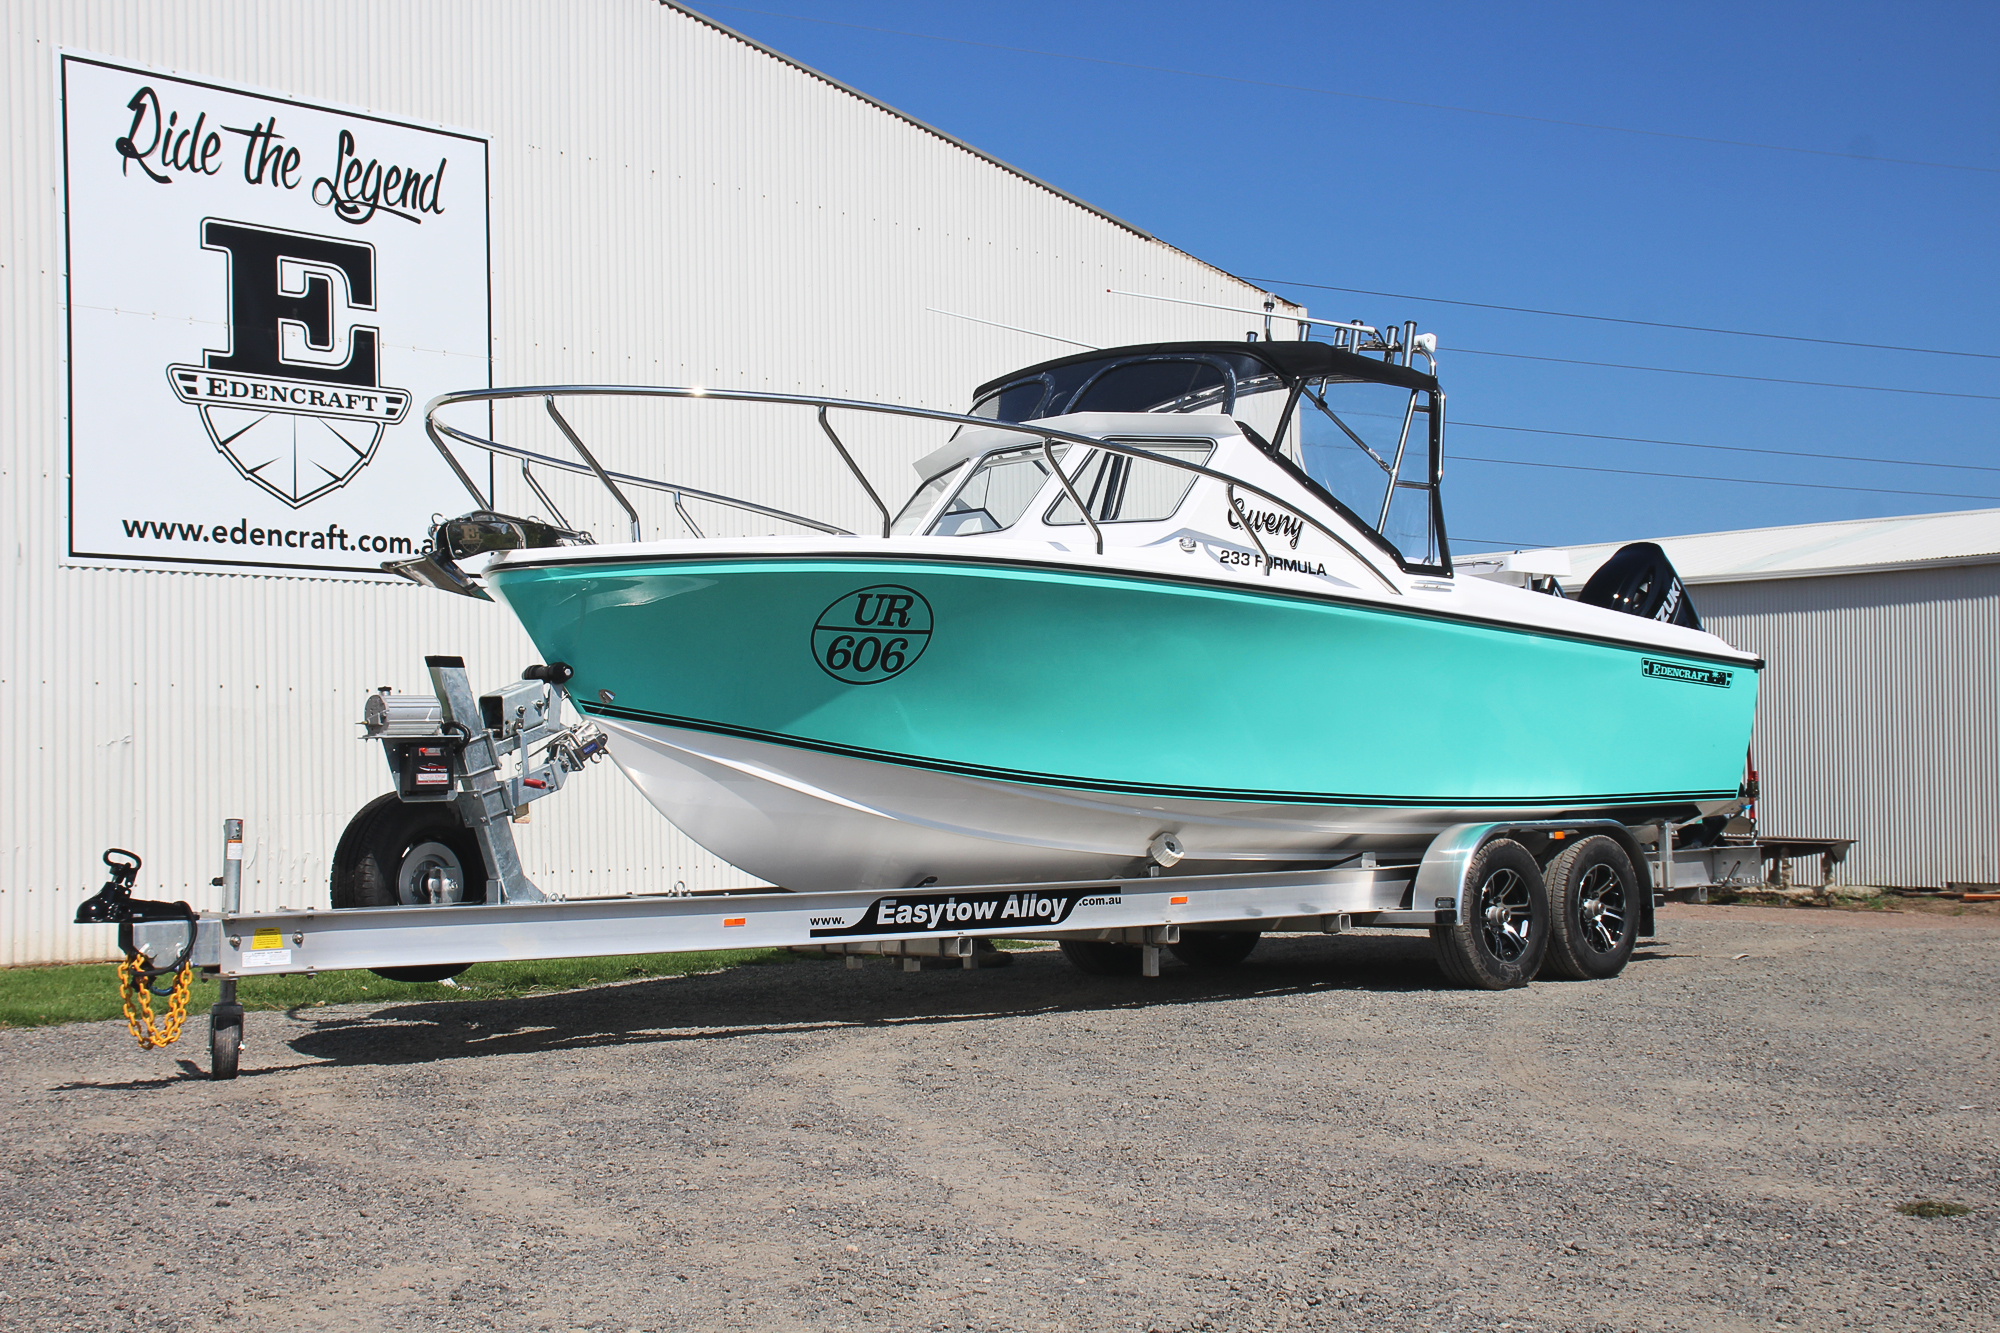 Edencraft 233 Formula Classic with turquoise colour sides and black decals sitting on EasyTow trailer